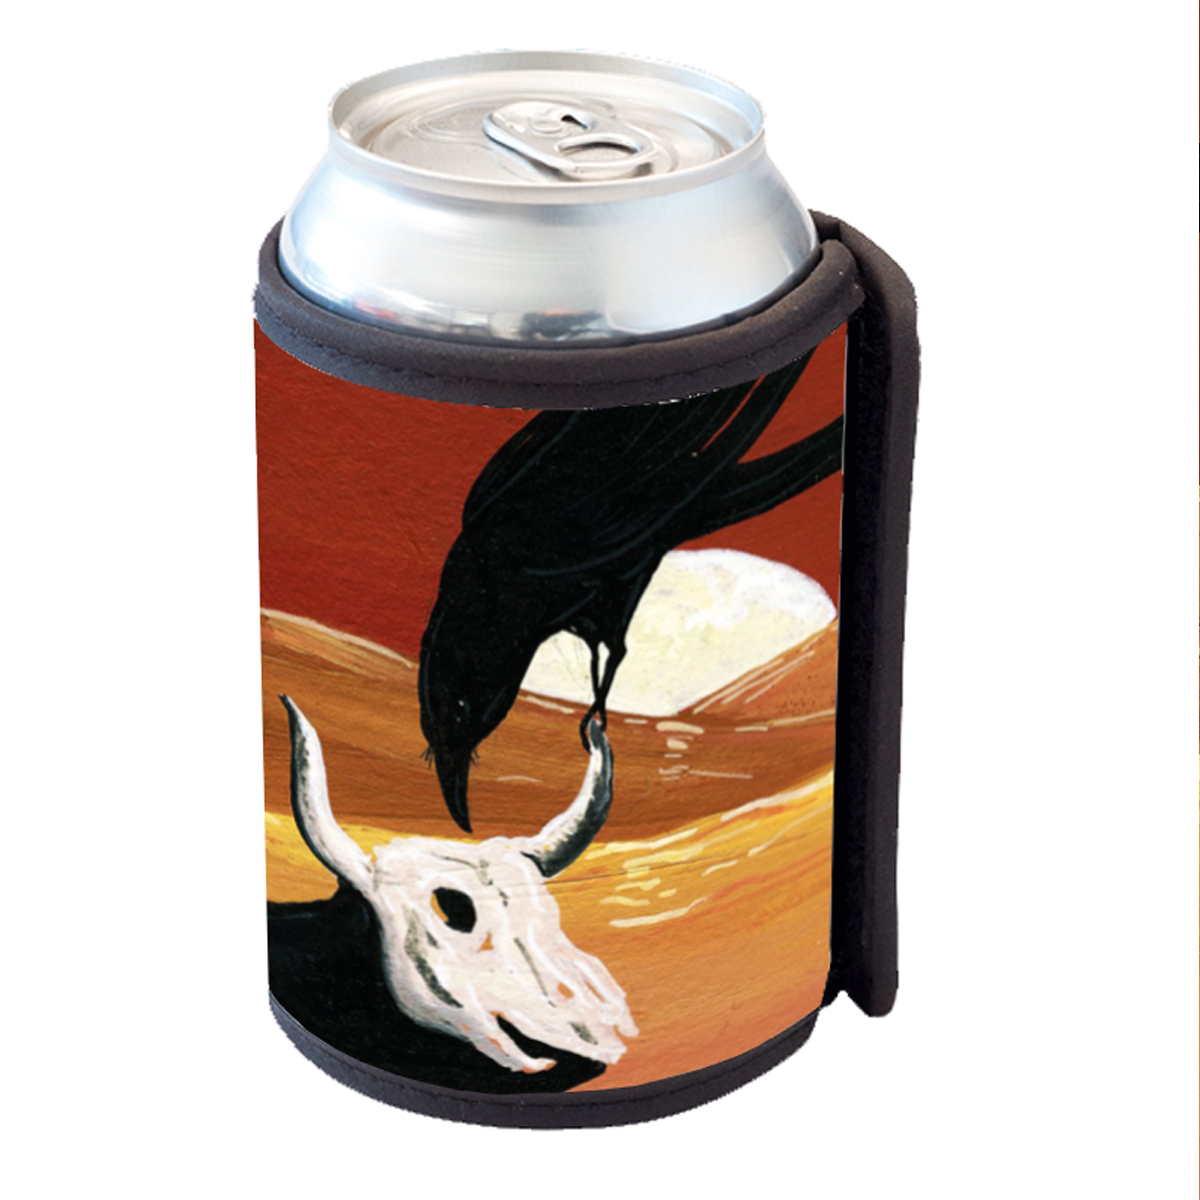 KuzmarK Insulated Drink Can Cooler Hugger - Raven & Cow Skull with Full Moon Surrealism Art by Denise Every